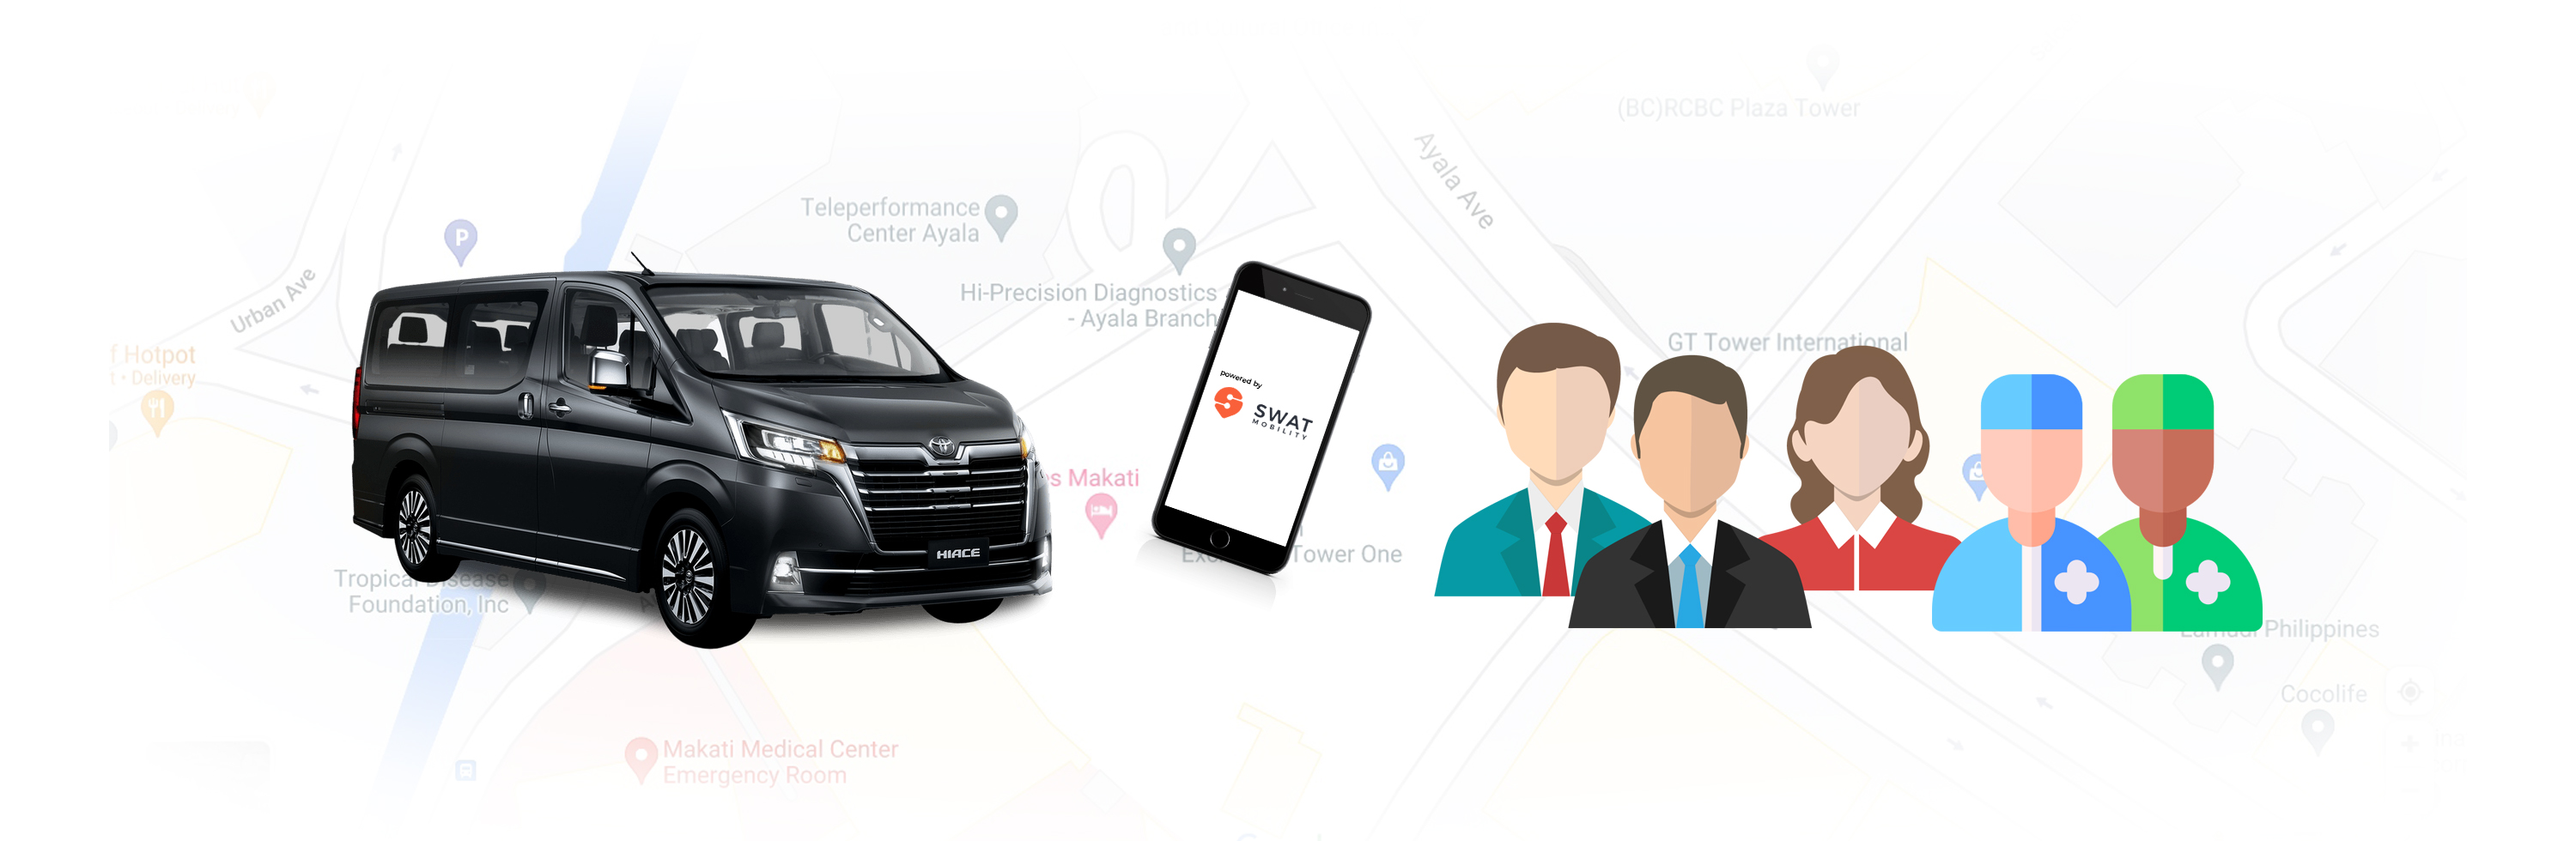 Toyota brings on-demand mobility with SWAT